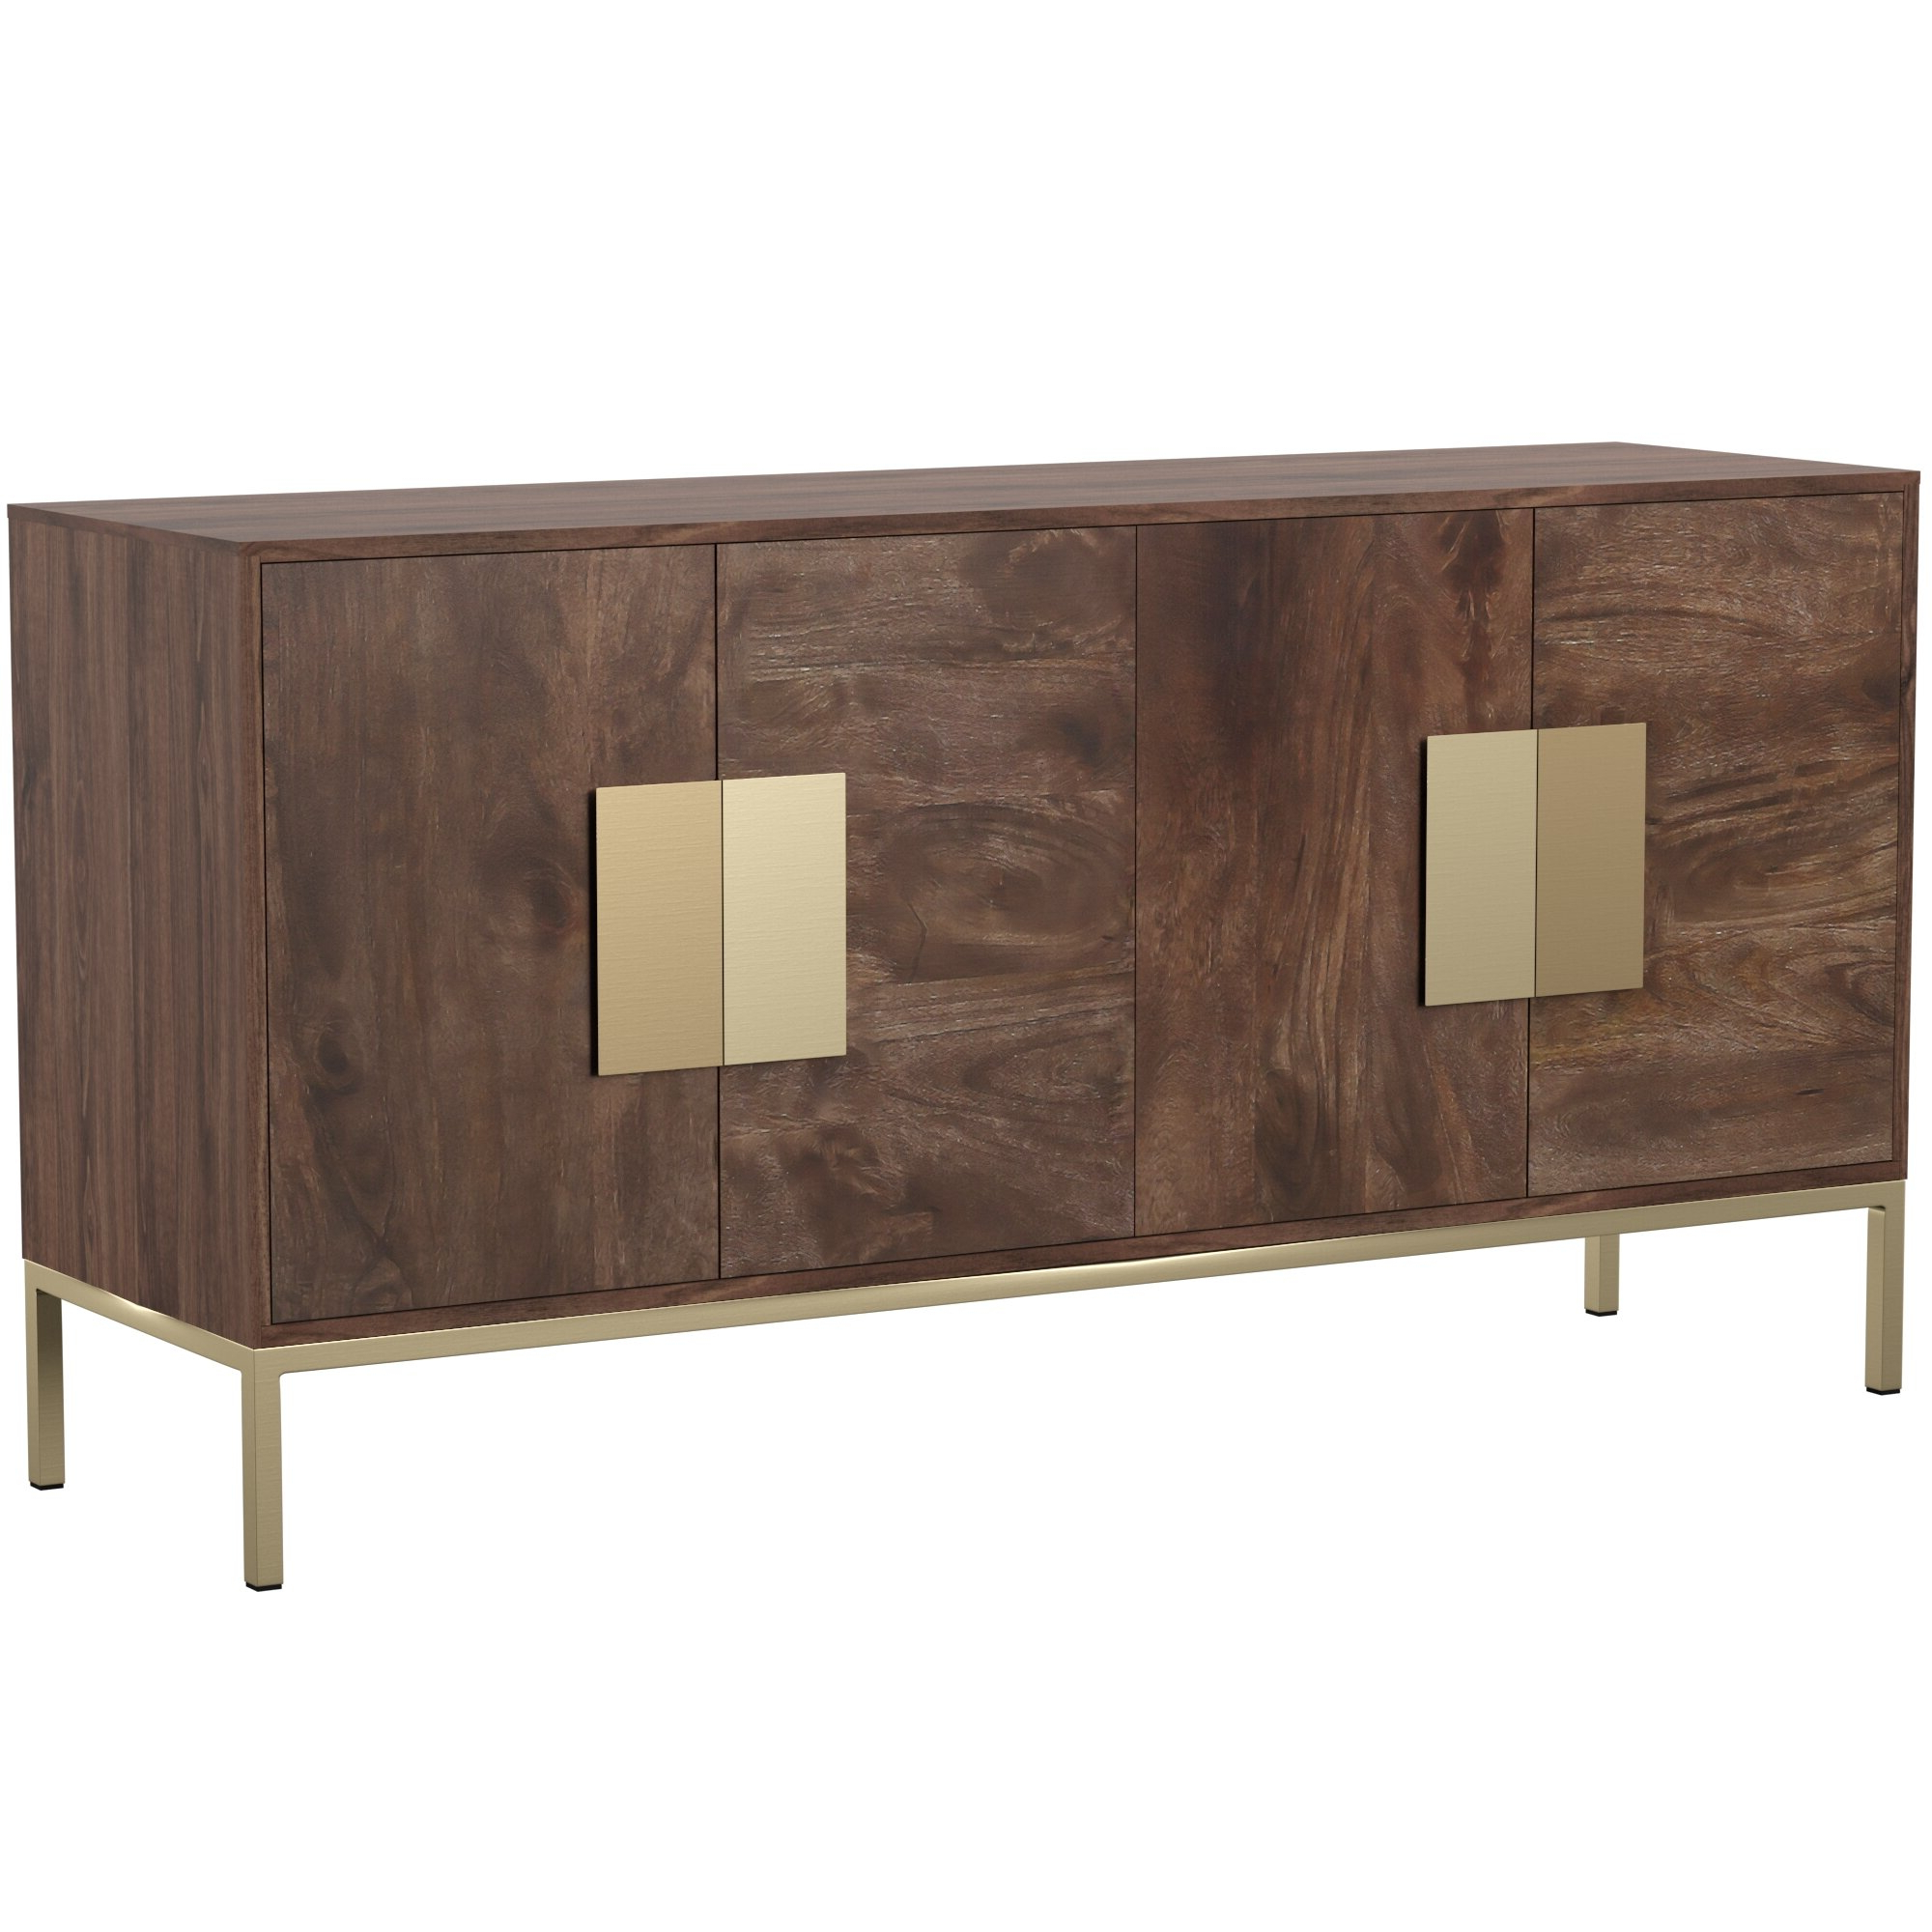 Kyte Sideboard With Regard To Cher Sideboards (Gallery 14 of 20)